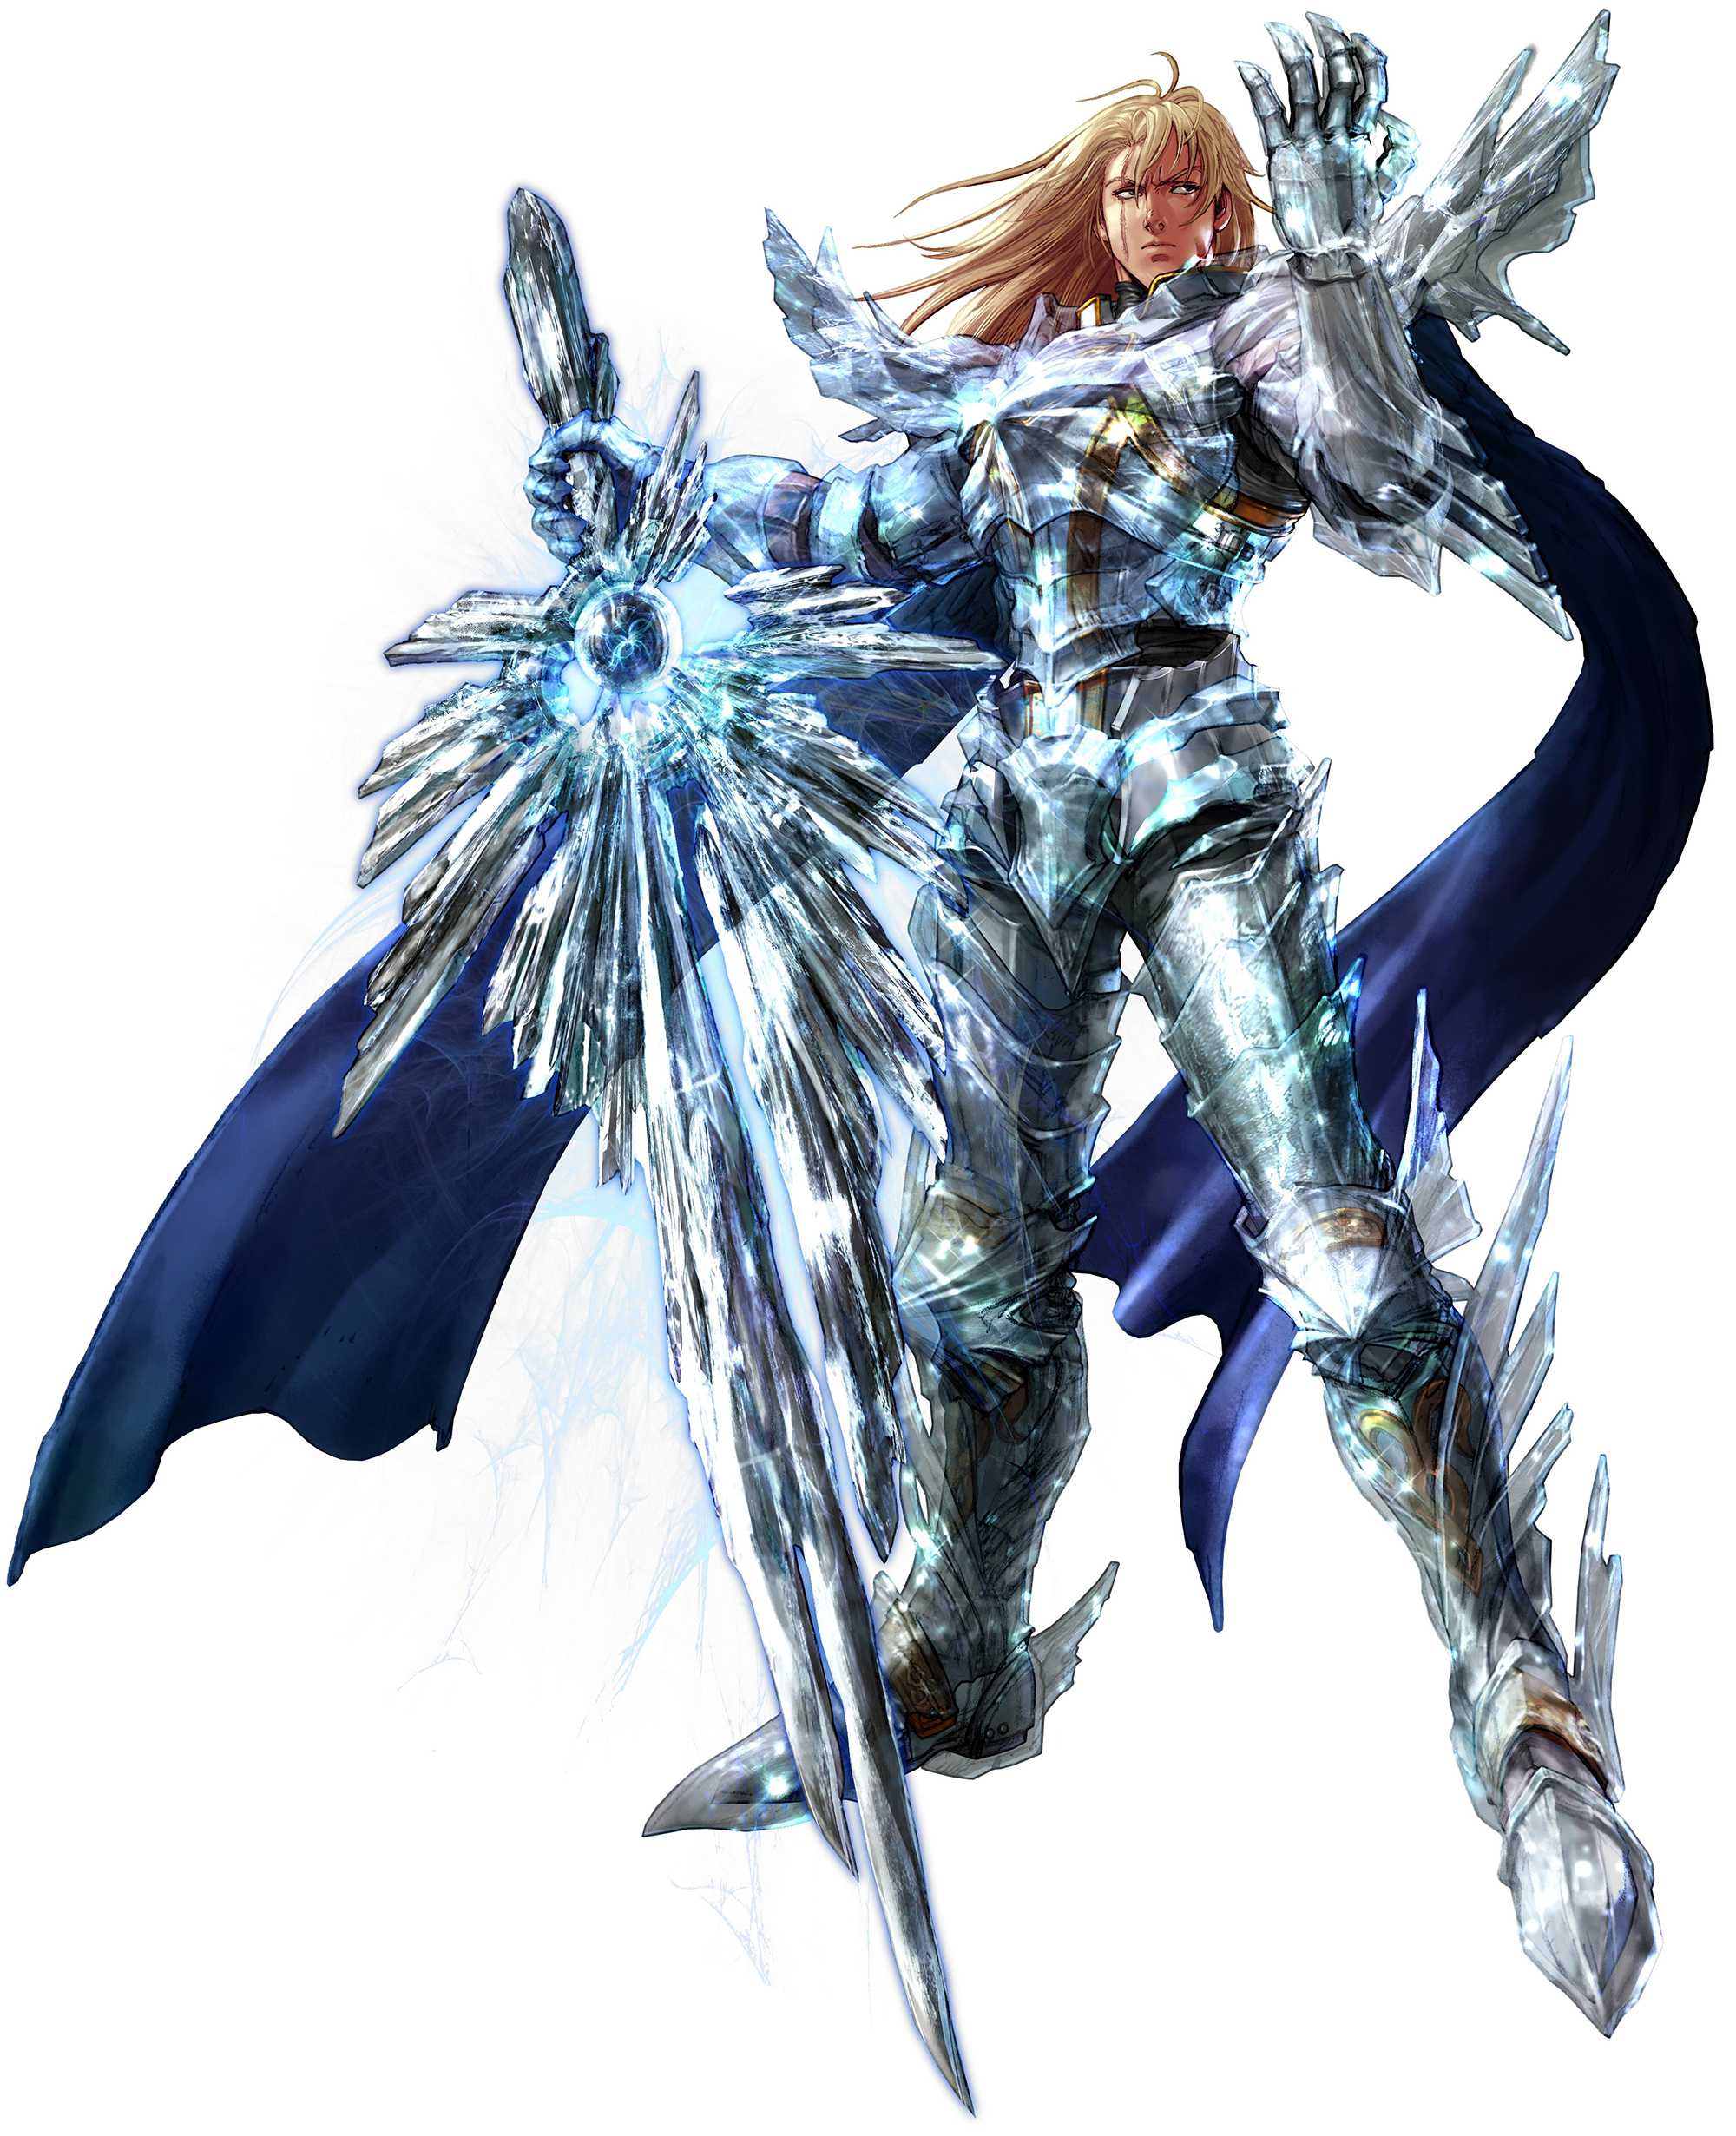 Image result for siegfried soul calibur 4